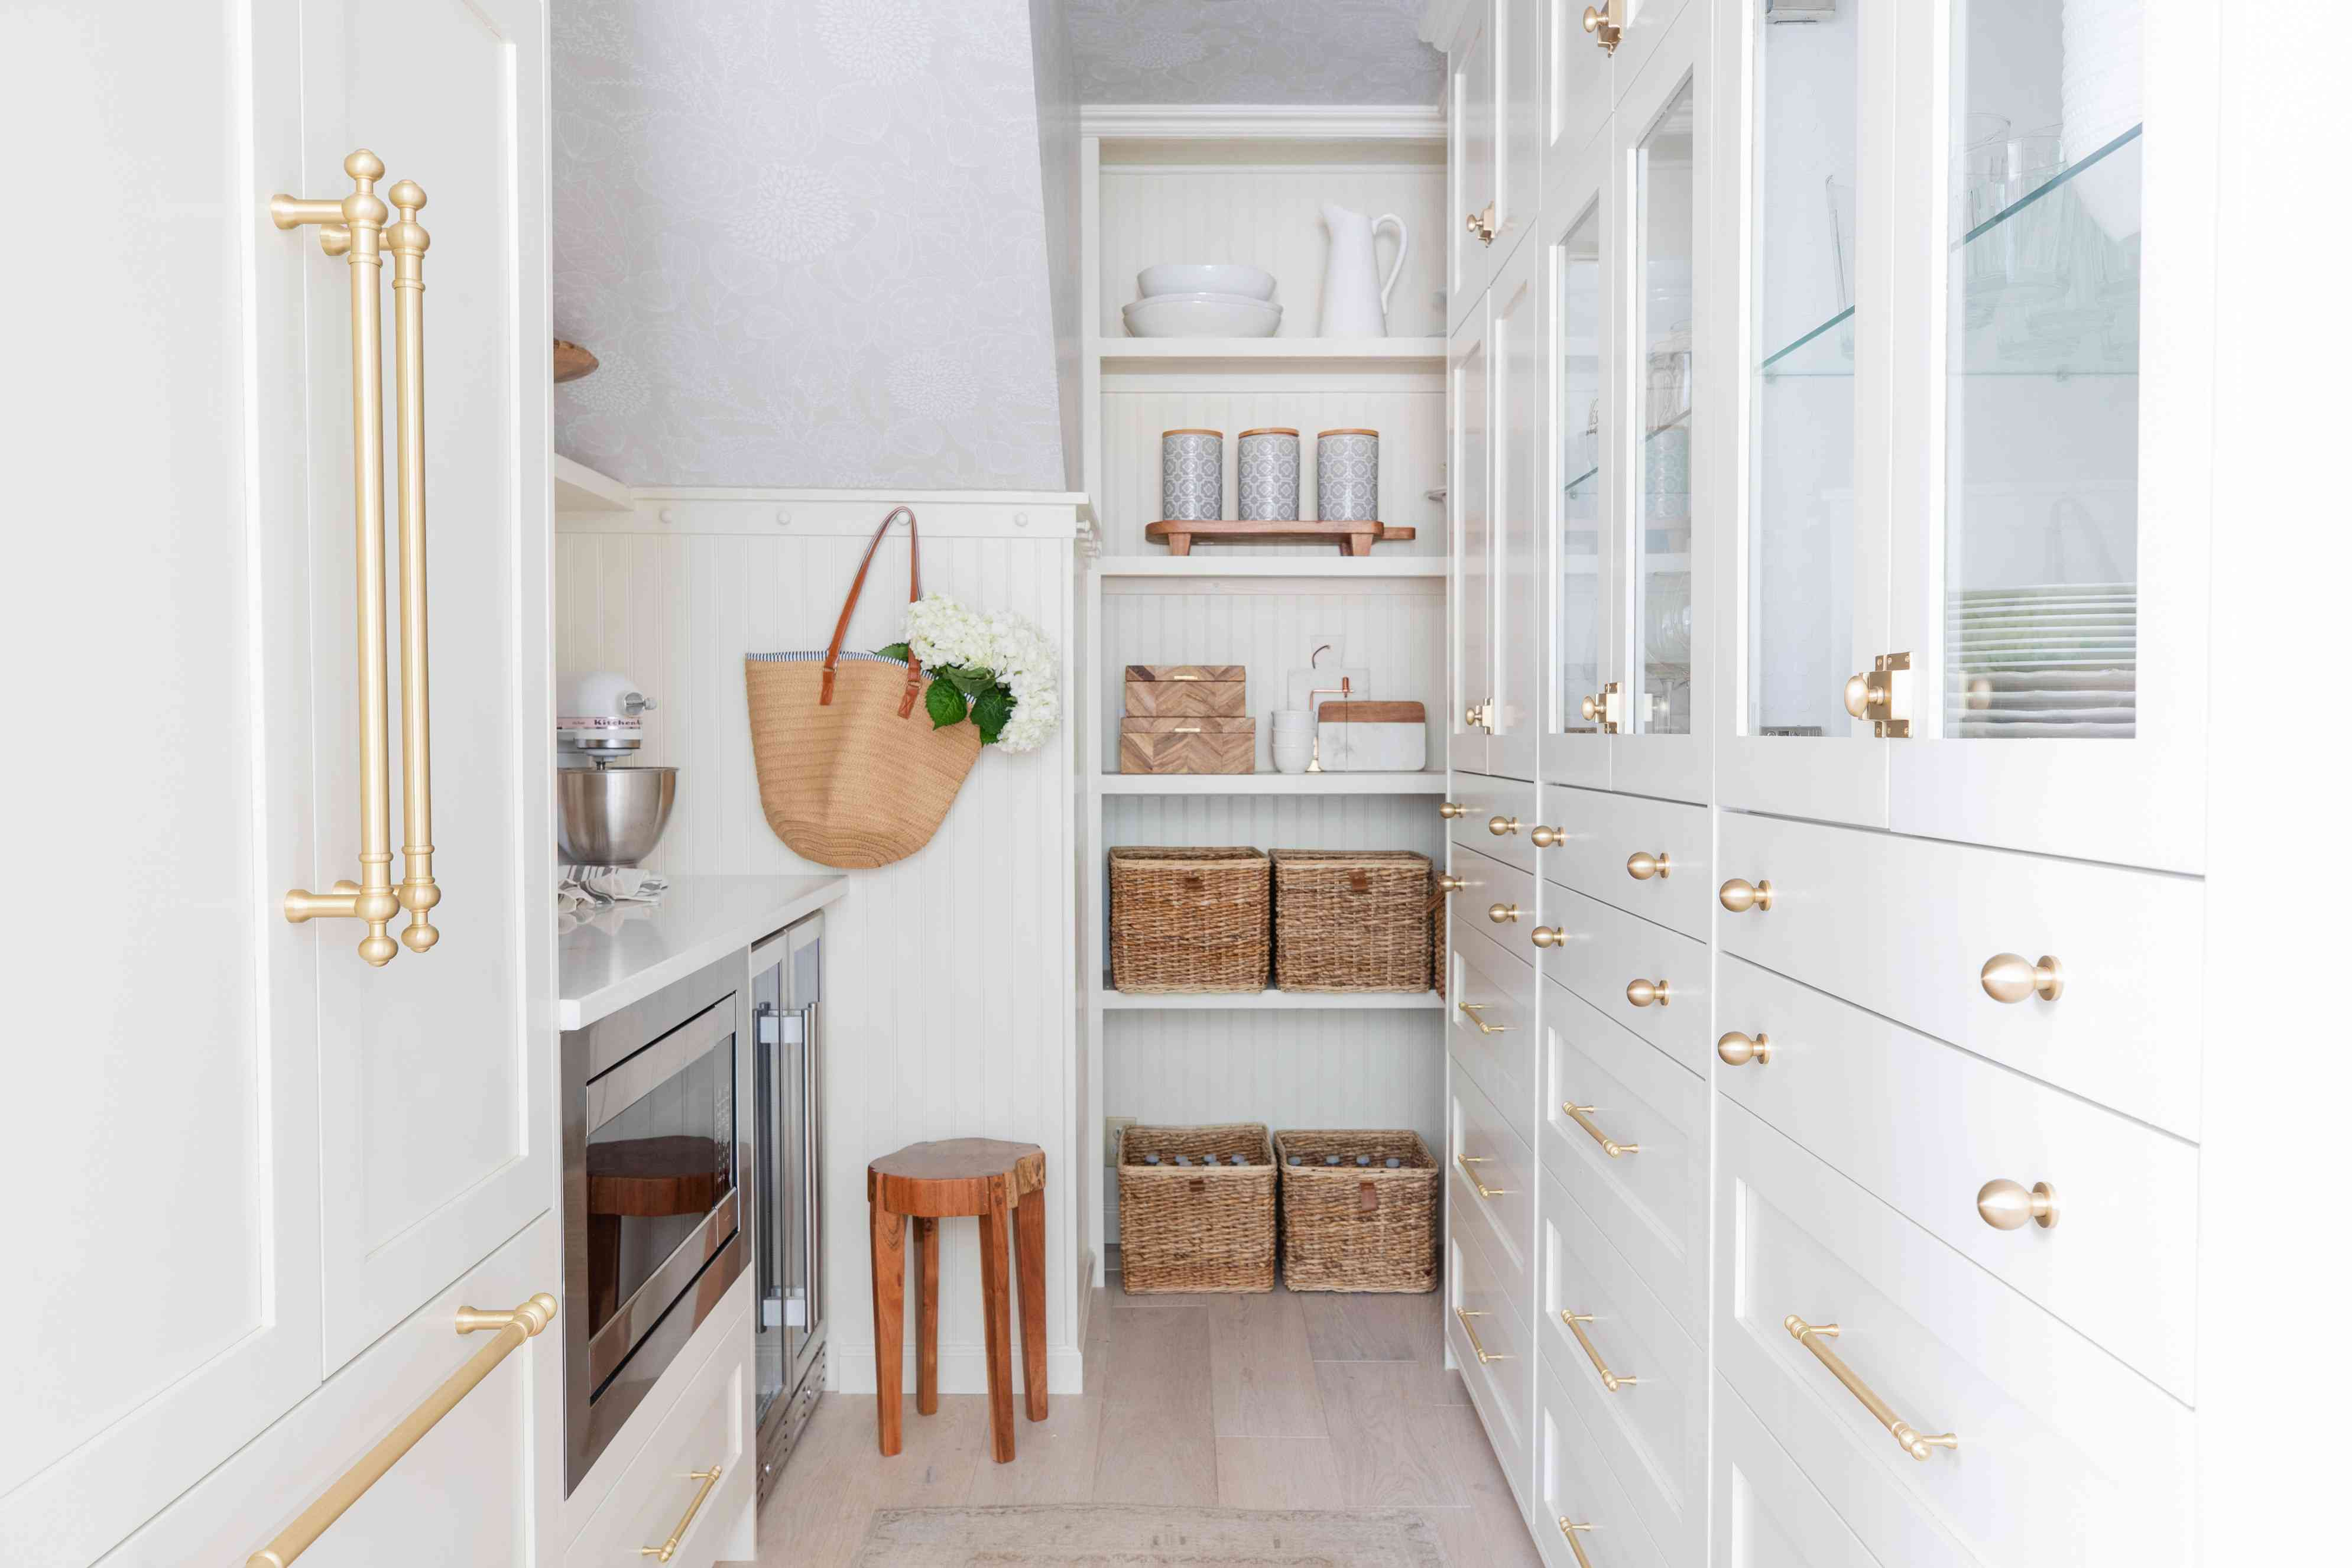 Under the stairs pantry storage.